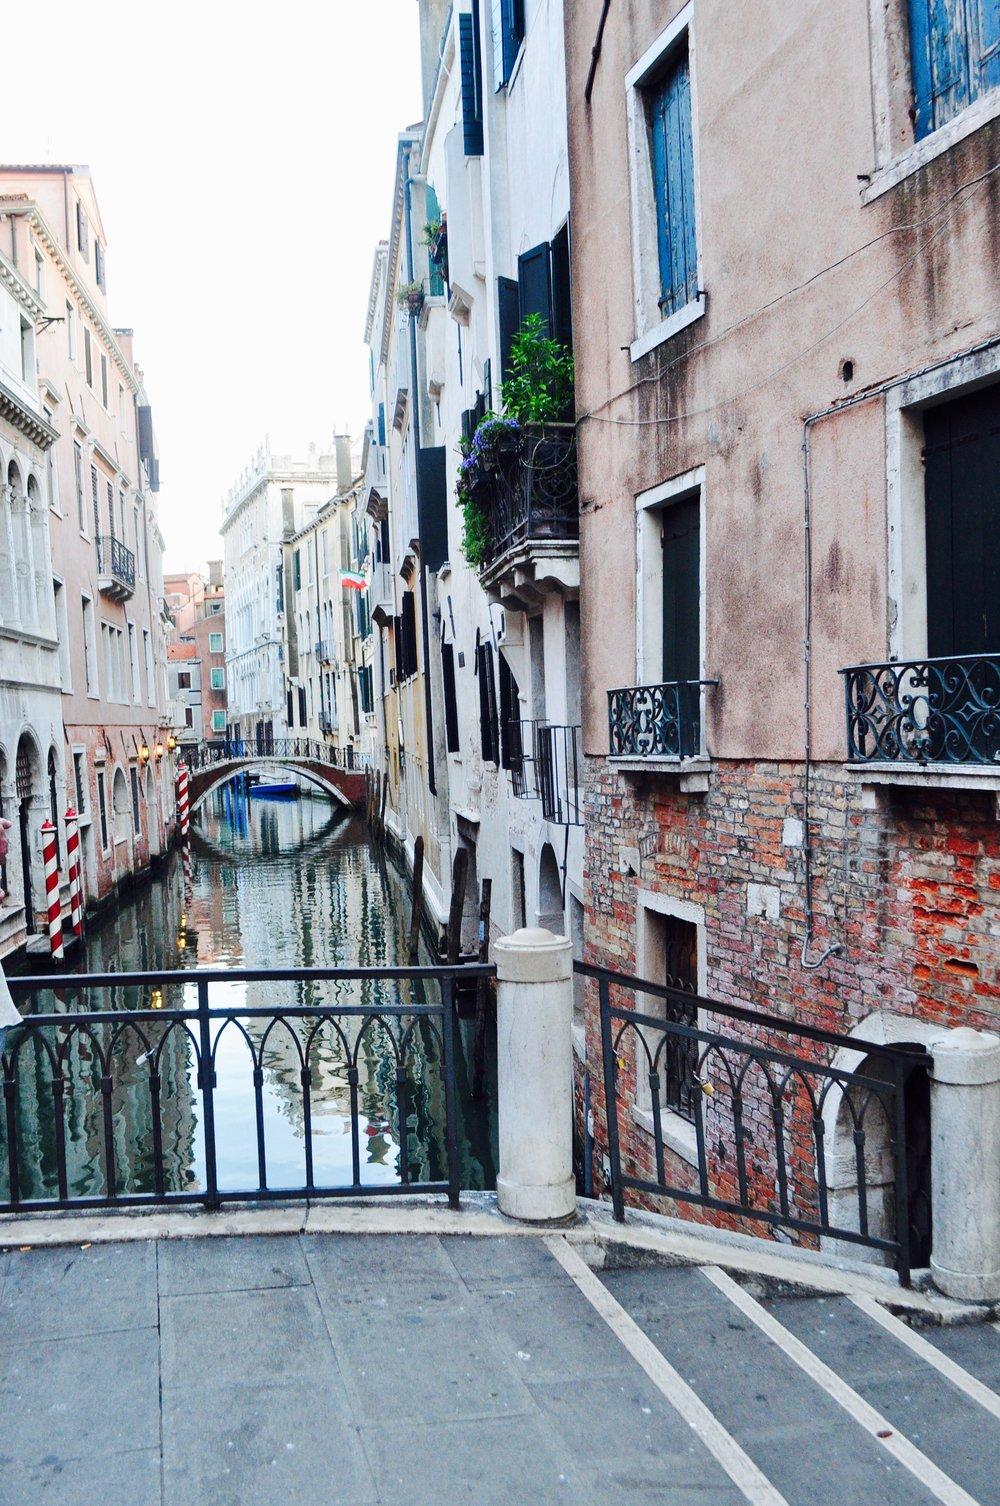 Bridges and Canals of Venice